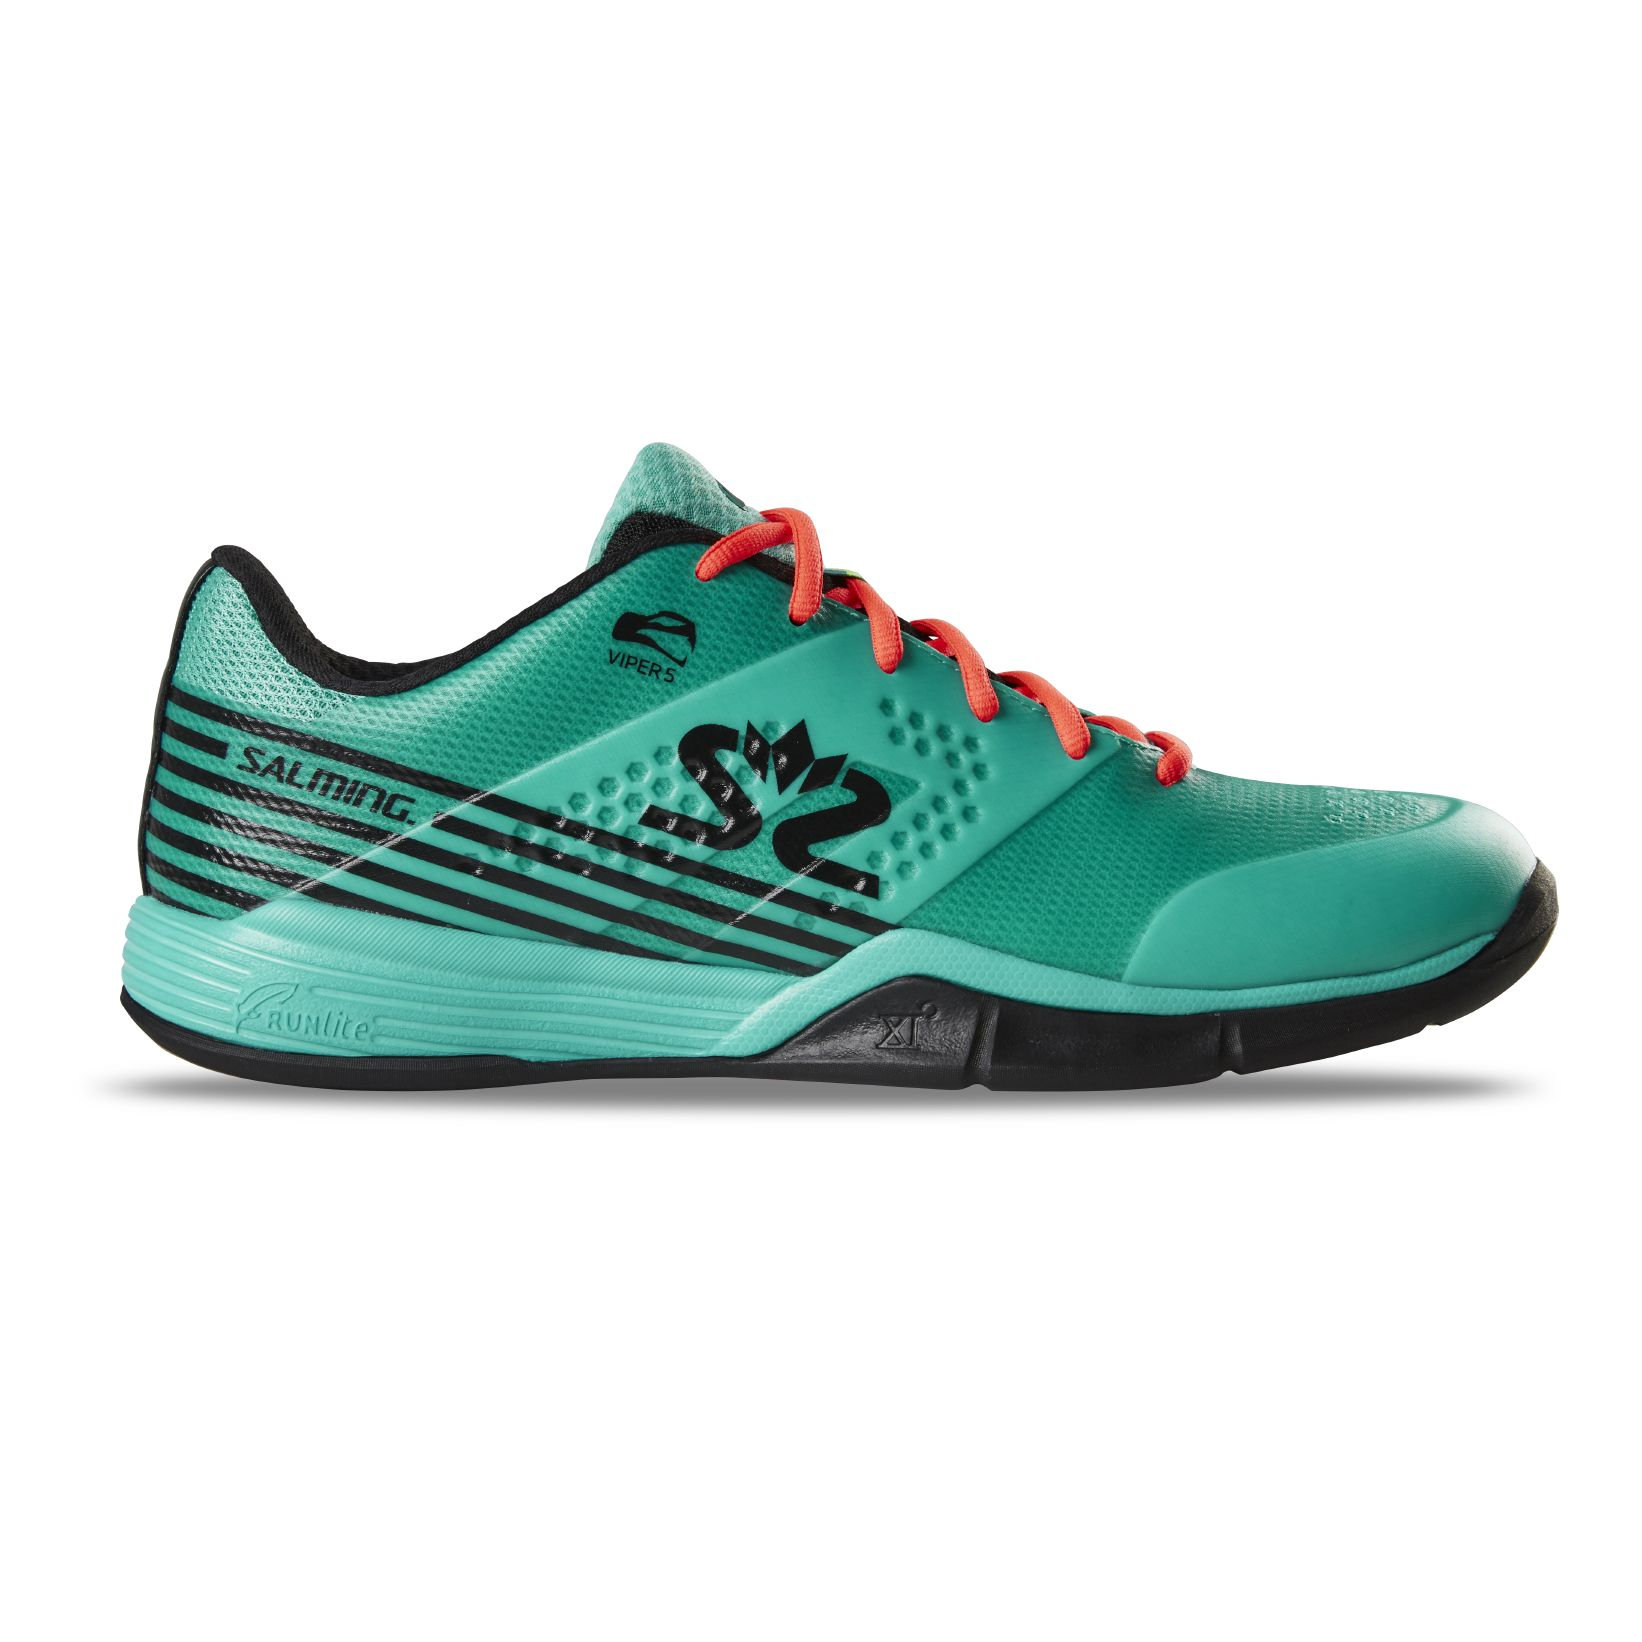 Salming Viper 5 Shoe Men Turquoise/Black 8 UK - 42 2/3 EUR - 27 cm